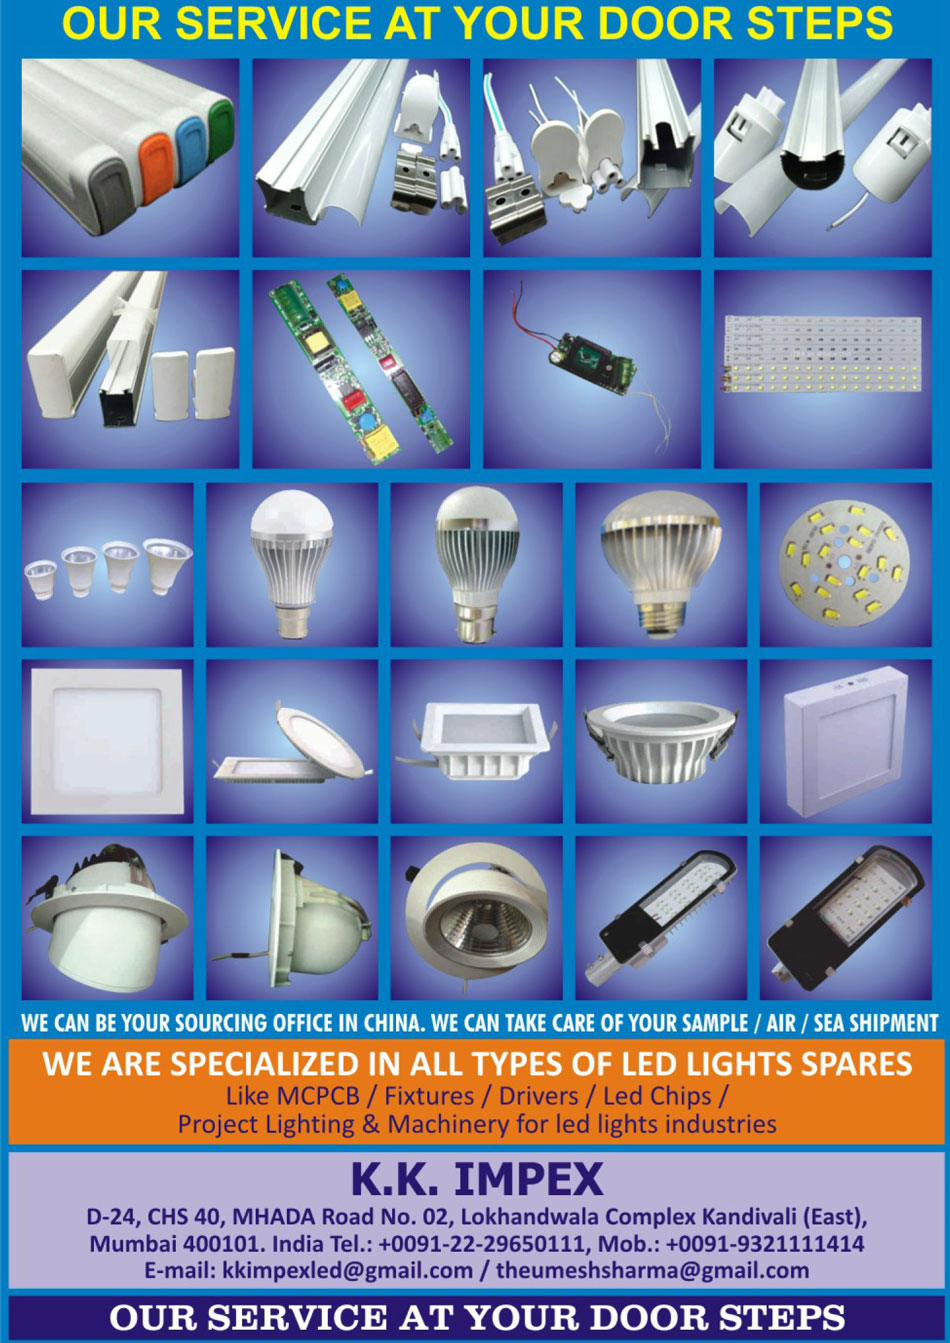 Led Light Products, MCPCB, LED Fixtures, Led Drivers, Led Chips, Light Projects, Led Light Industry Machines, Fixtures, Led Fixture, Led, Led Manufacturing Machinery, Lighting, Led Lights Products, Led Chips, Project Lightings, Drivers, Led Fixtures, MCPCB Fixtures,Led Drivers